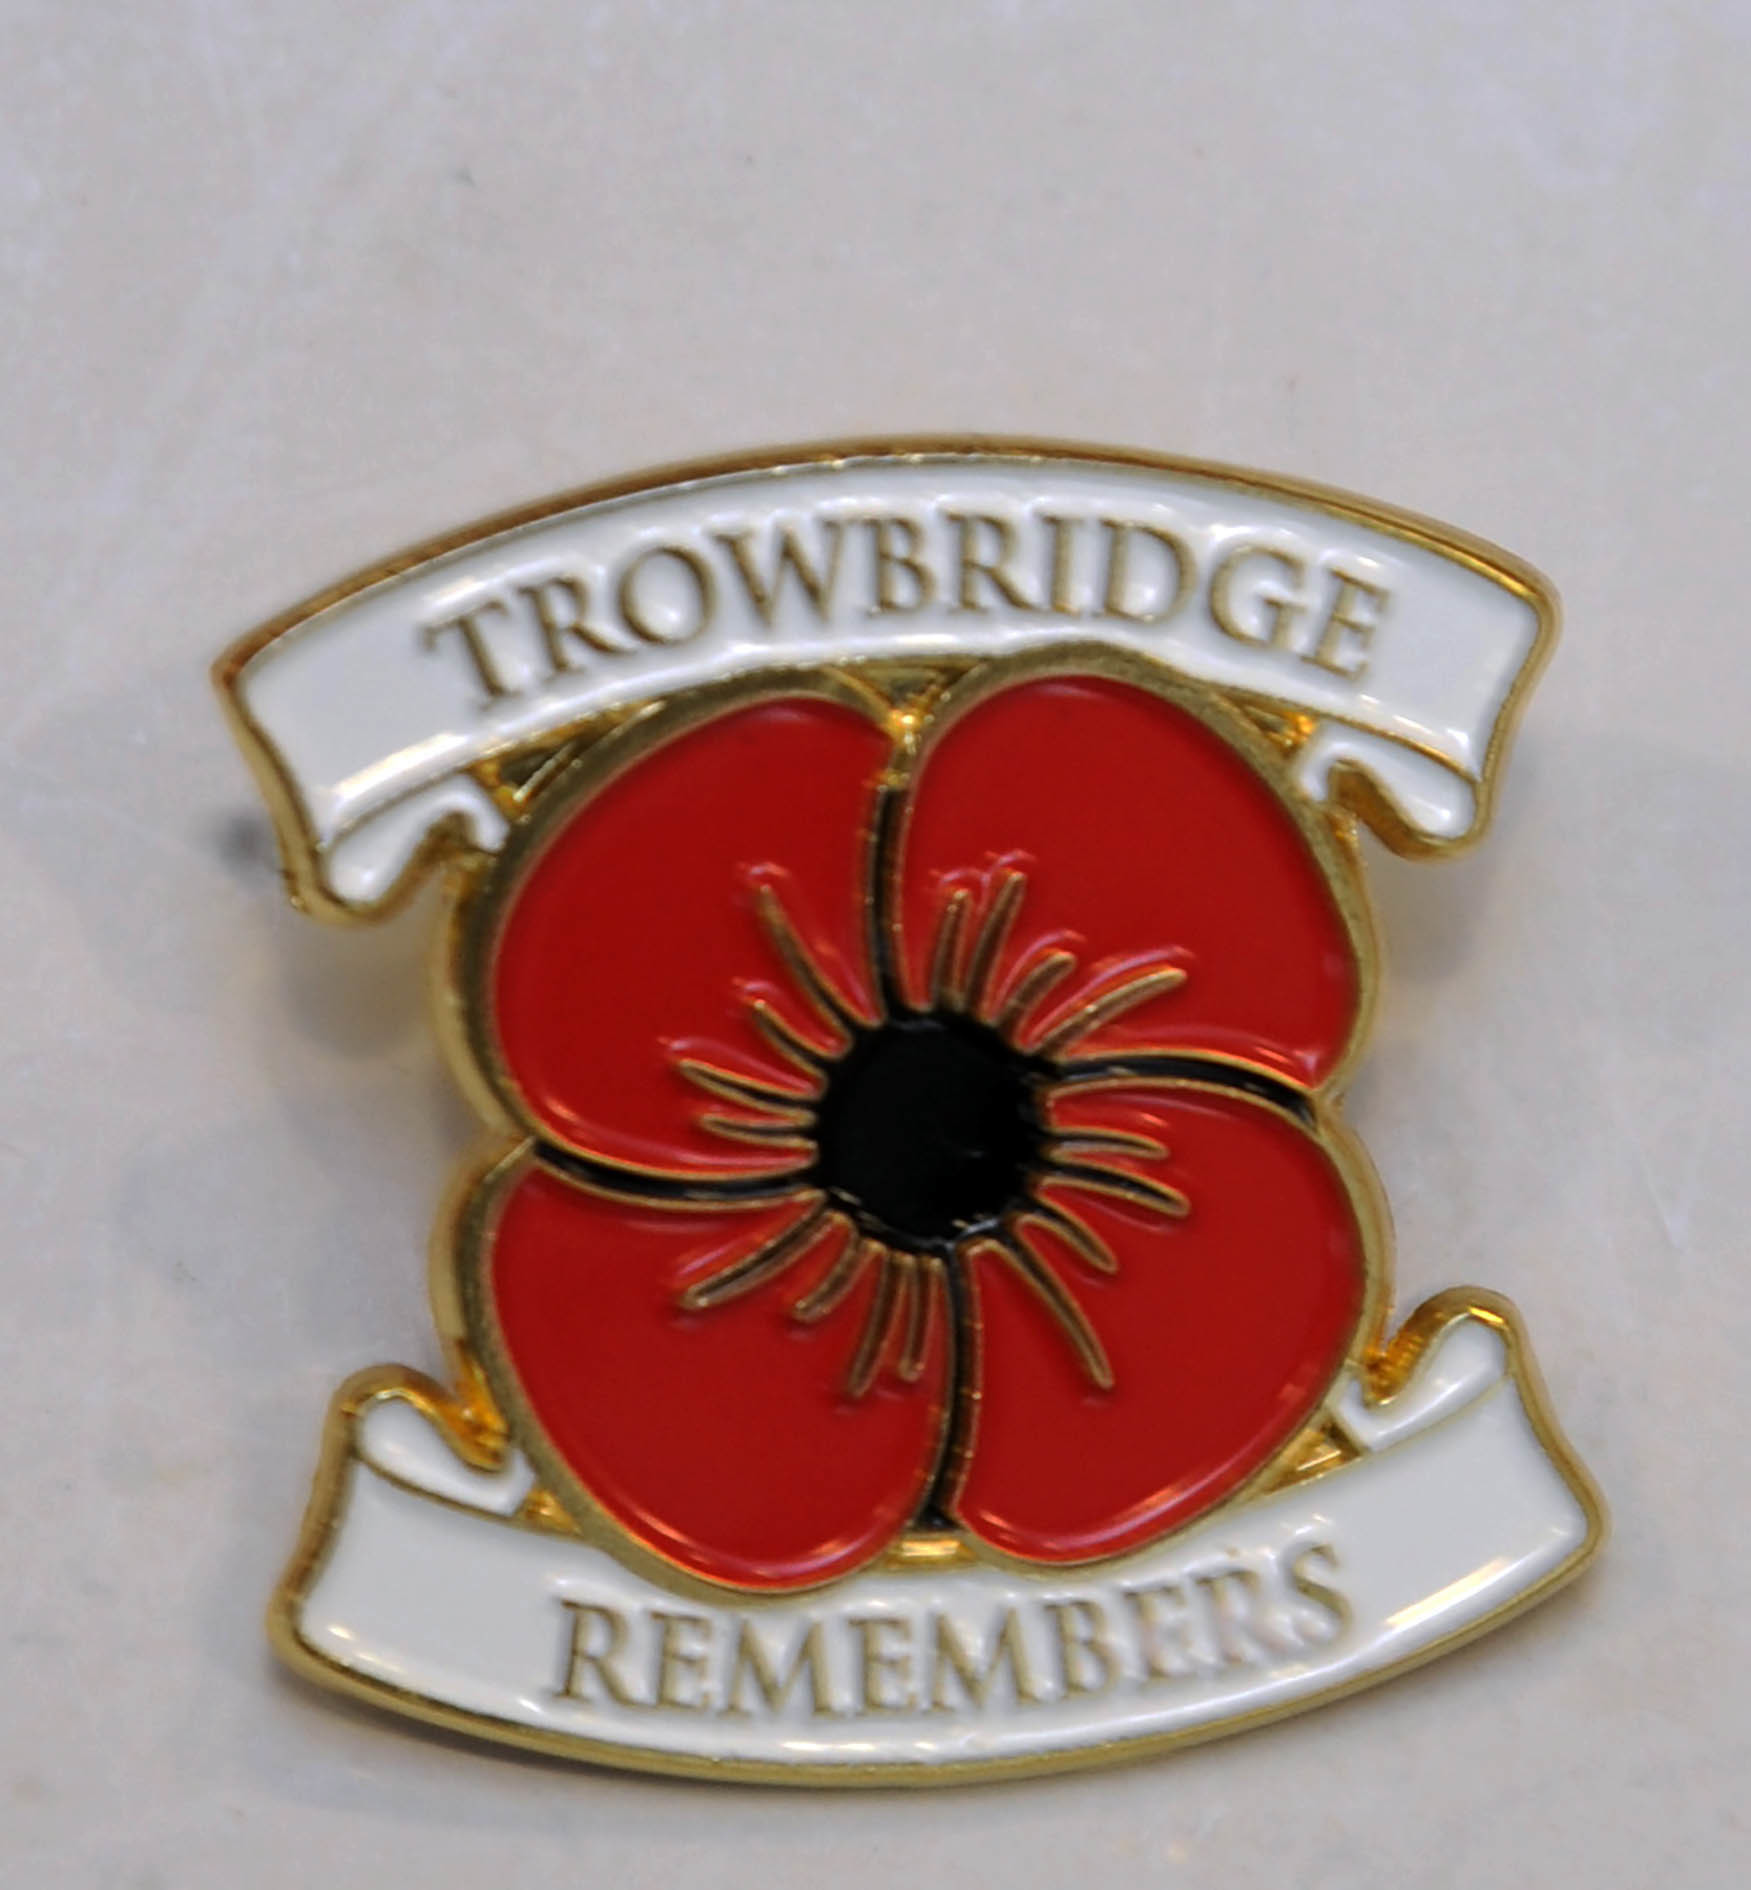 Special edition Trowbridge poppies launched